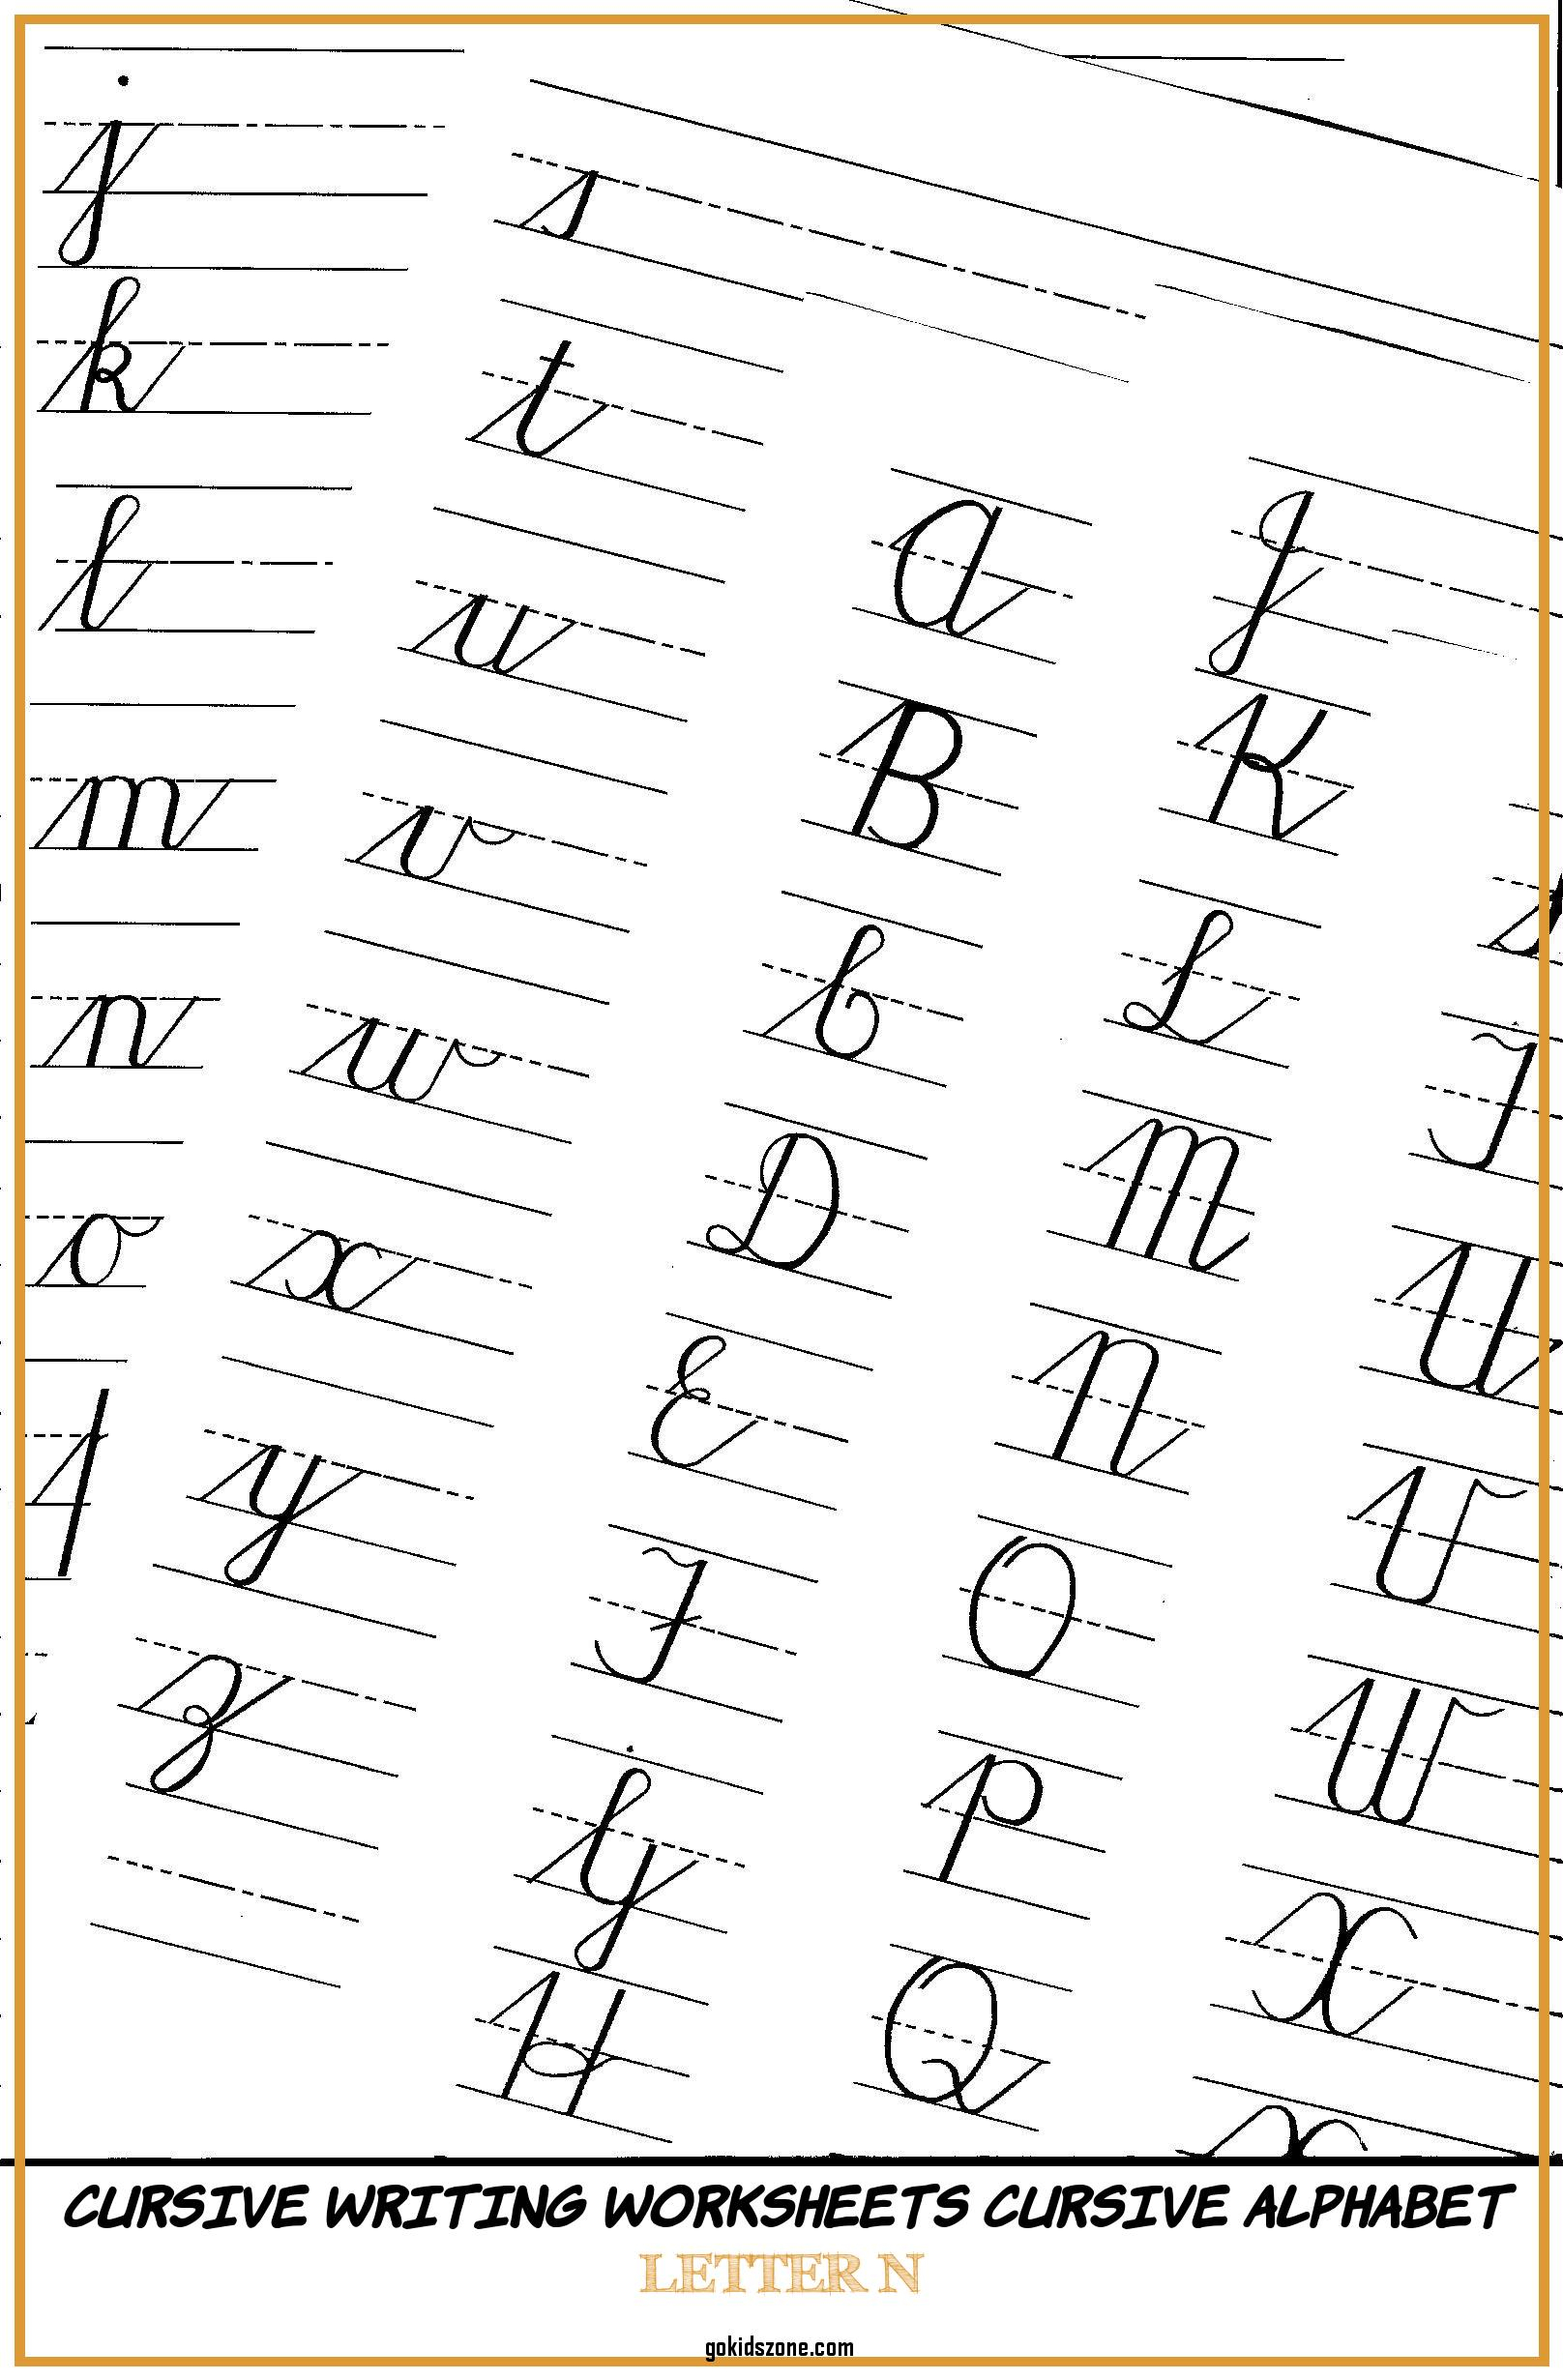 Calligraphy Alphabet Practice Sheets Printable